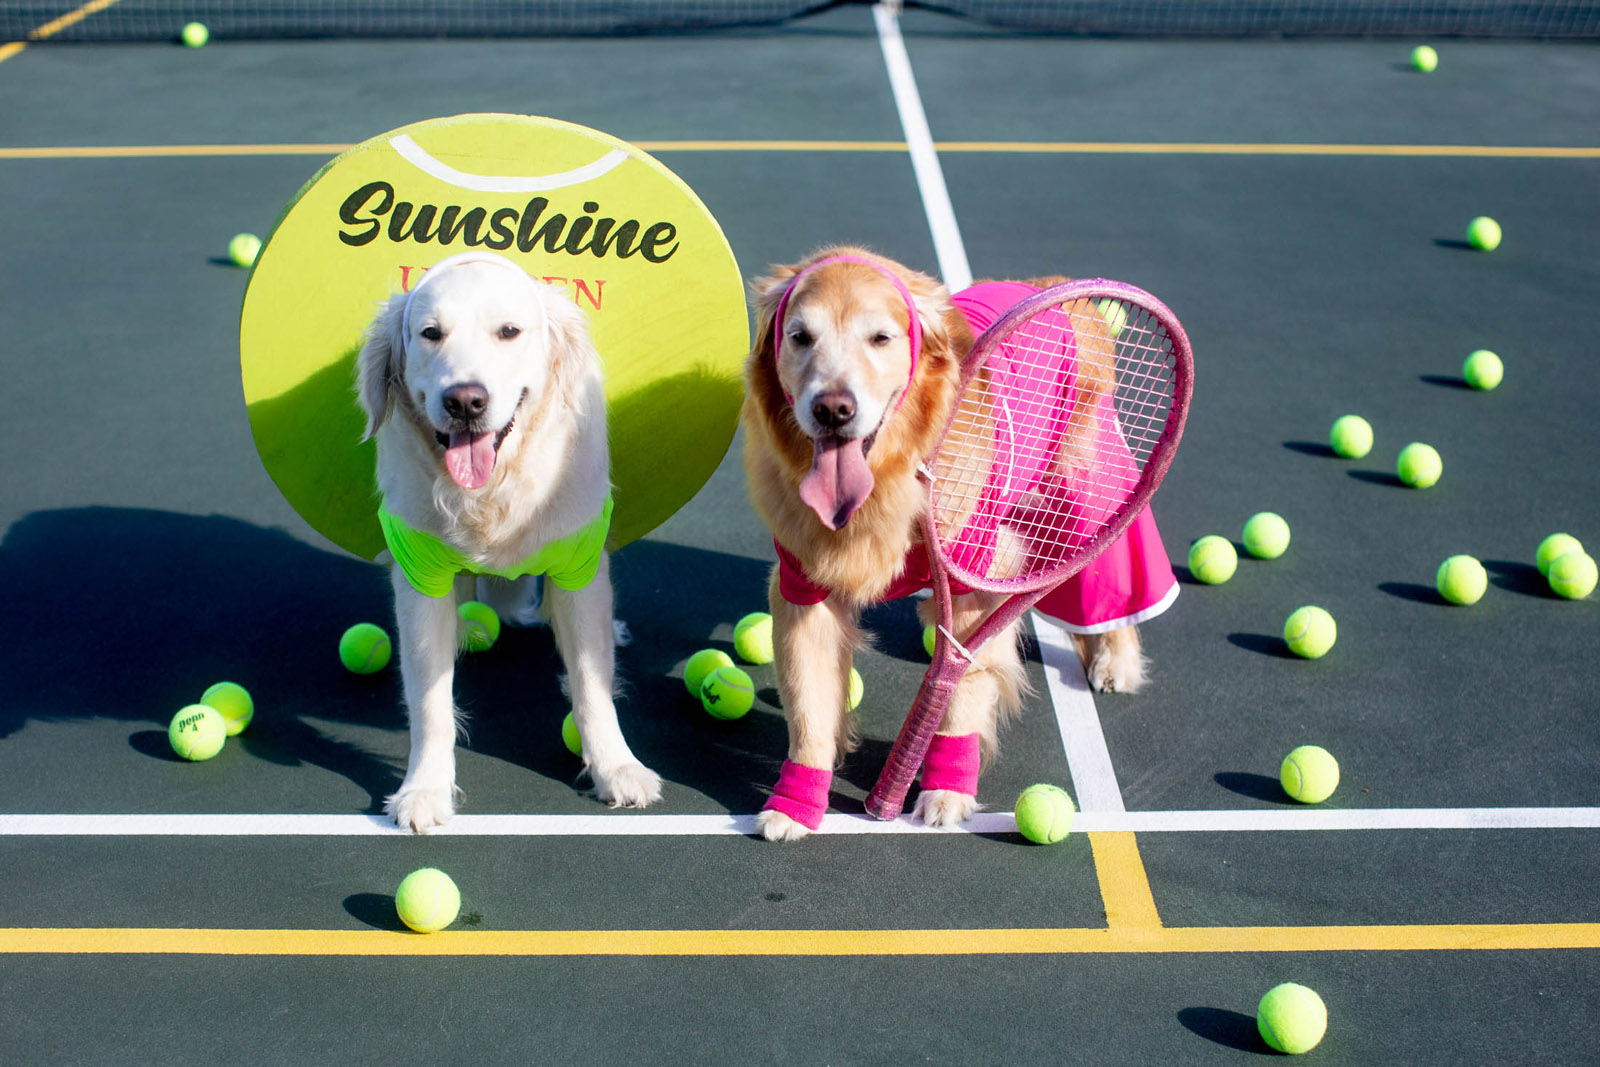 Best Dog Halloween Costume Sunshine The Golden Retriever